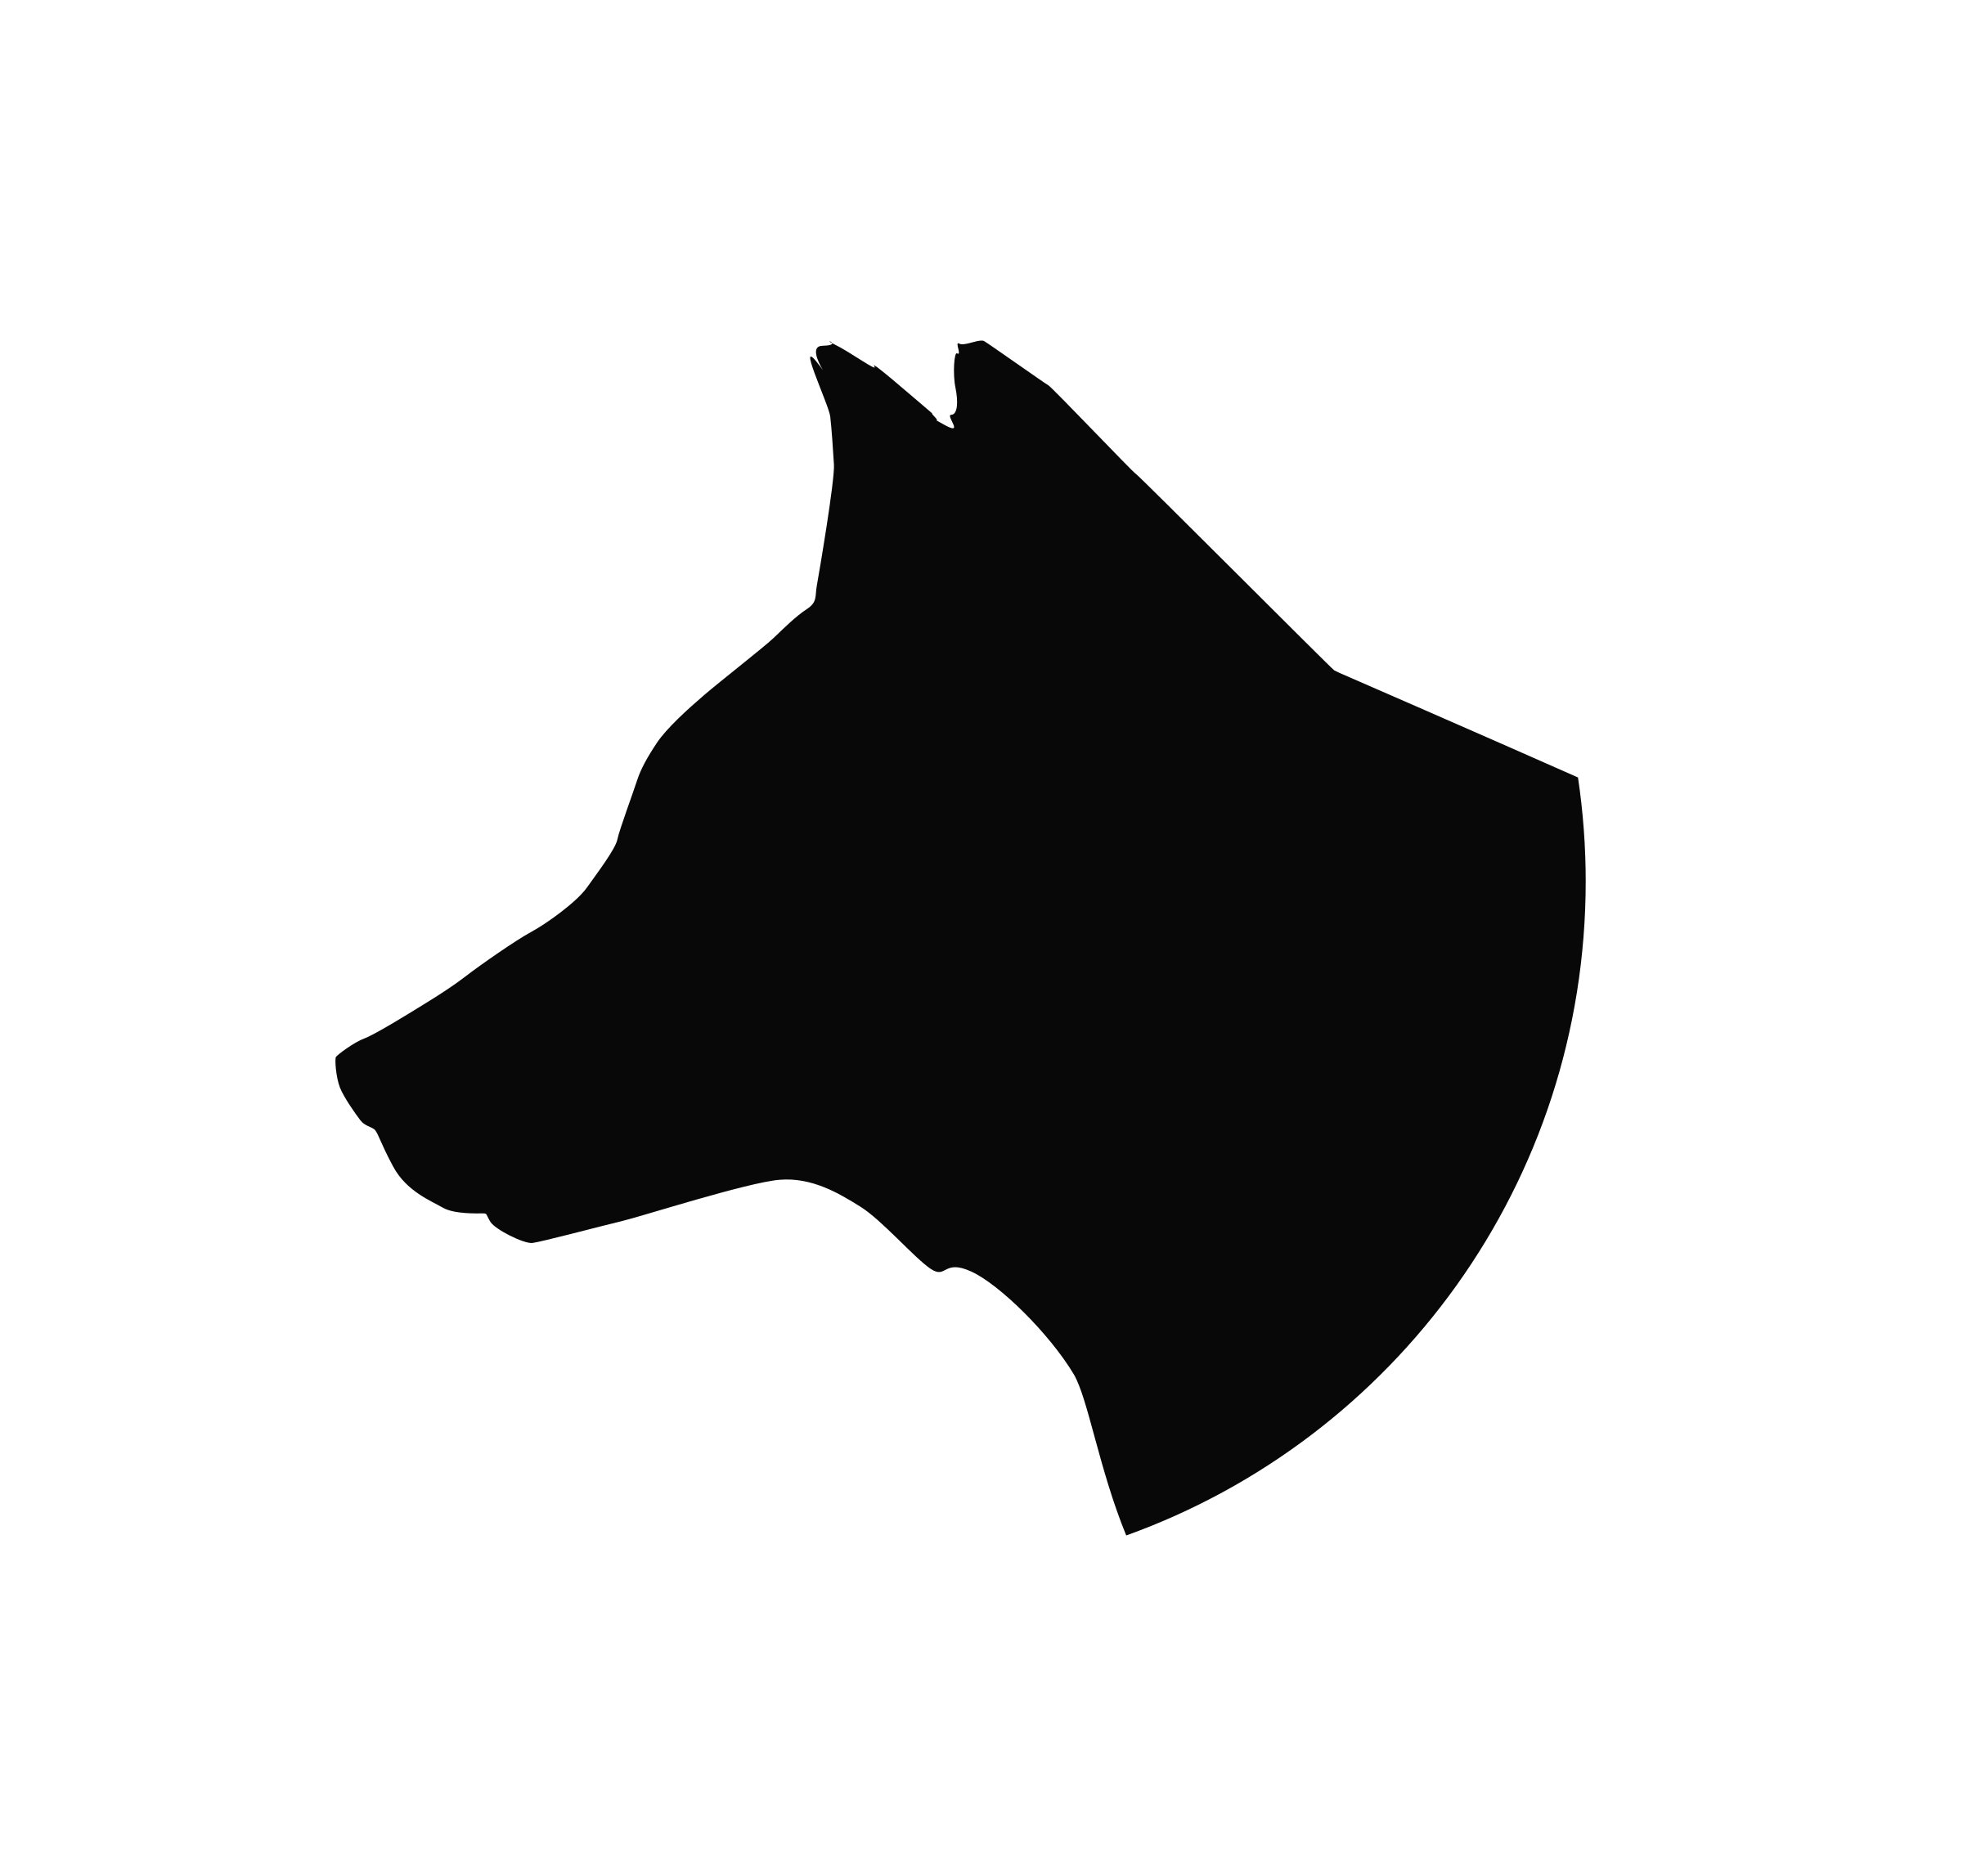 Wolf Head Silhouette Png - Silhouette Gray wolf Clip art - mean dog png download - 2400*2294 ...